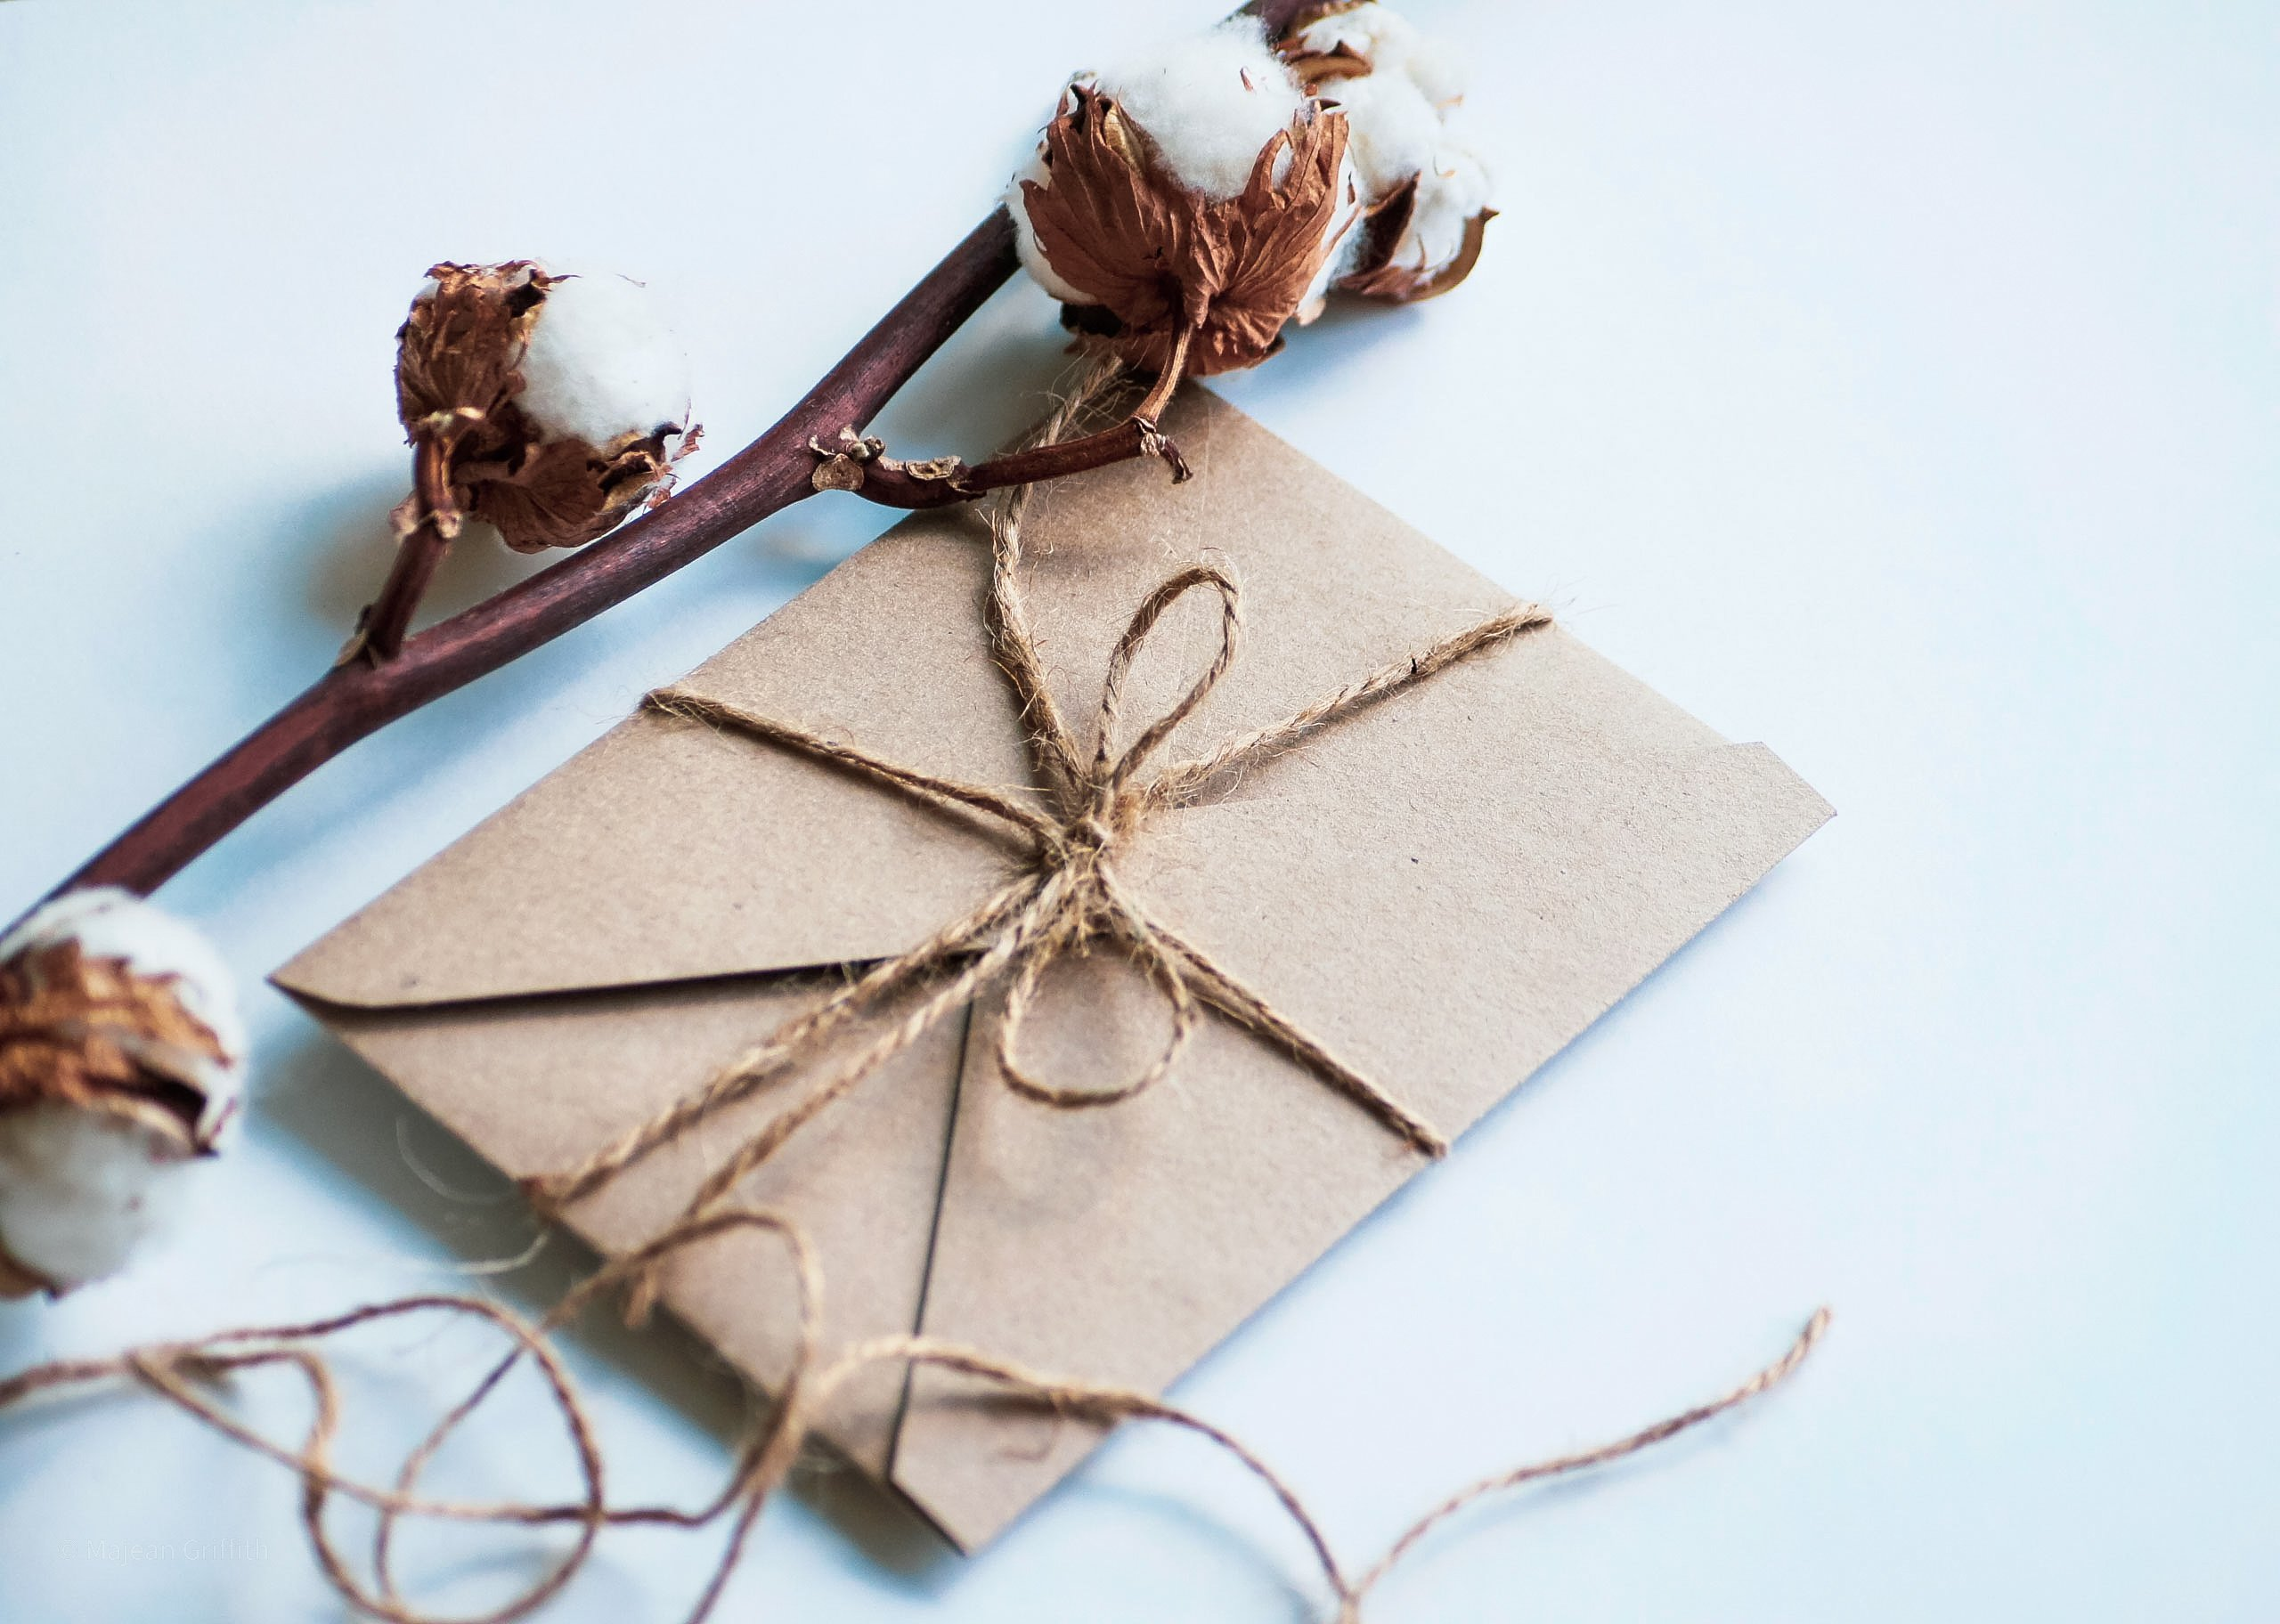 Ultimate Christmas 2020 gift guide - wrapped present with brown paper and twine